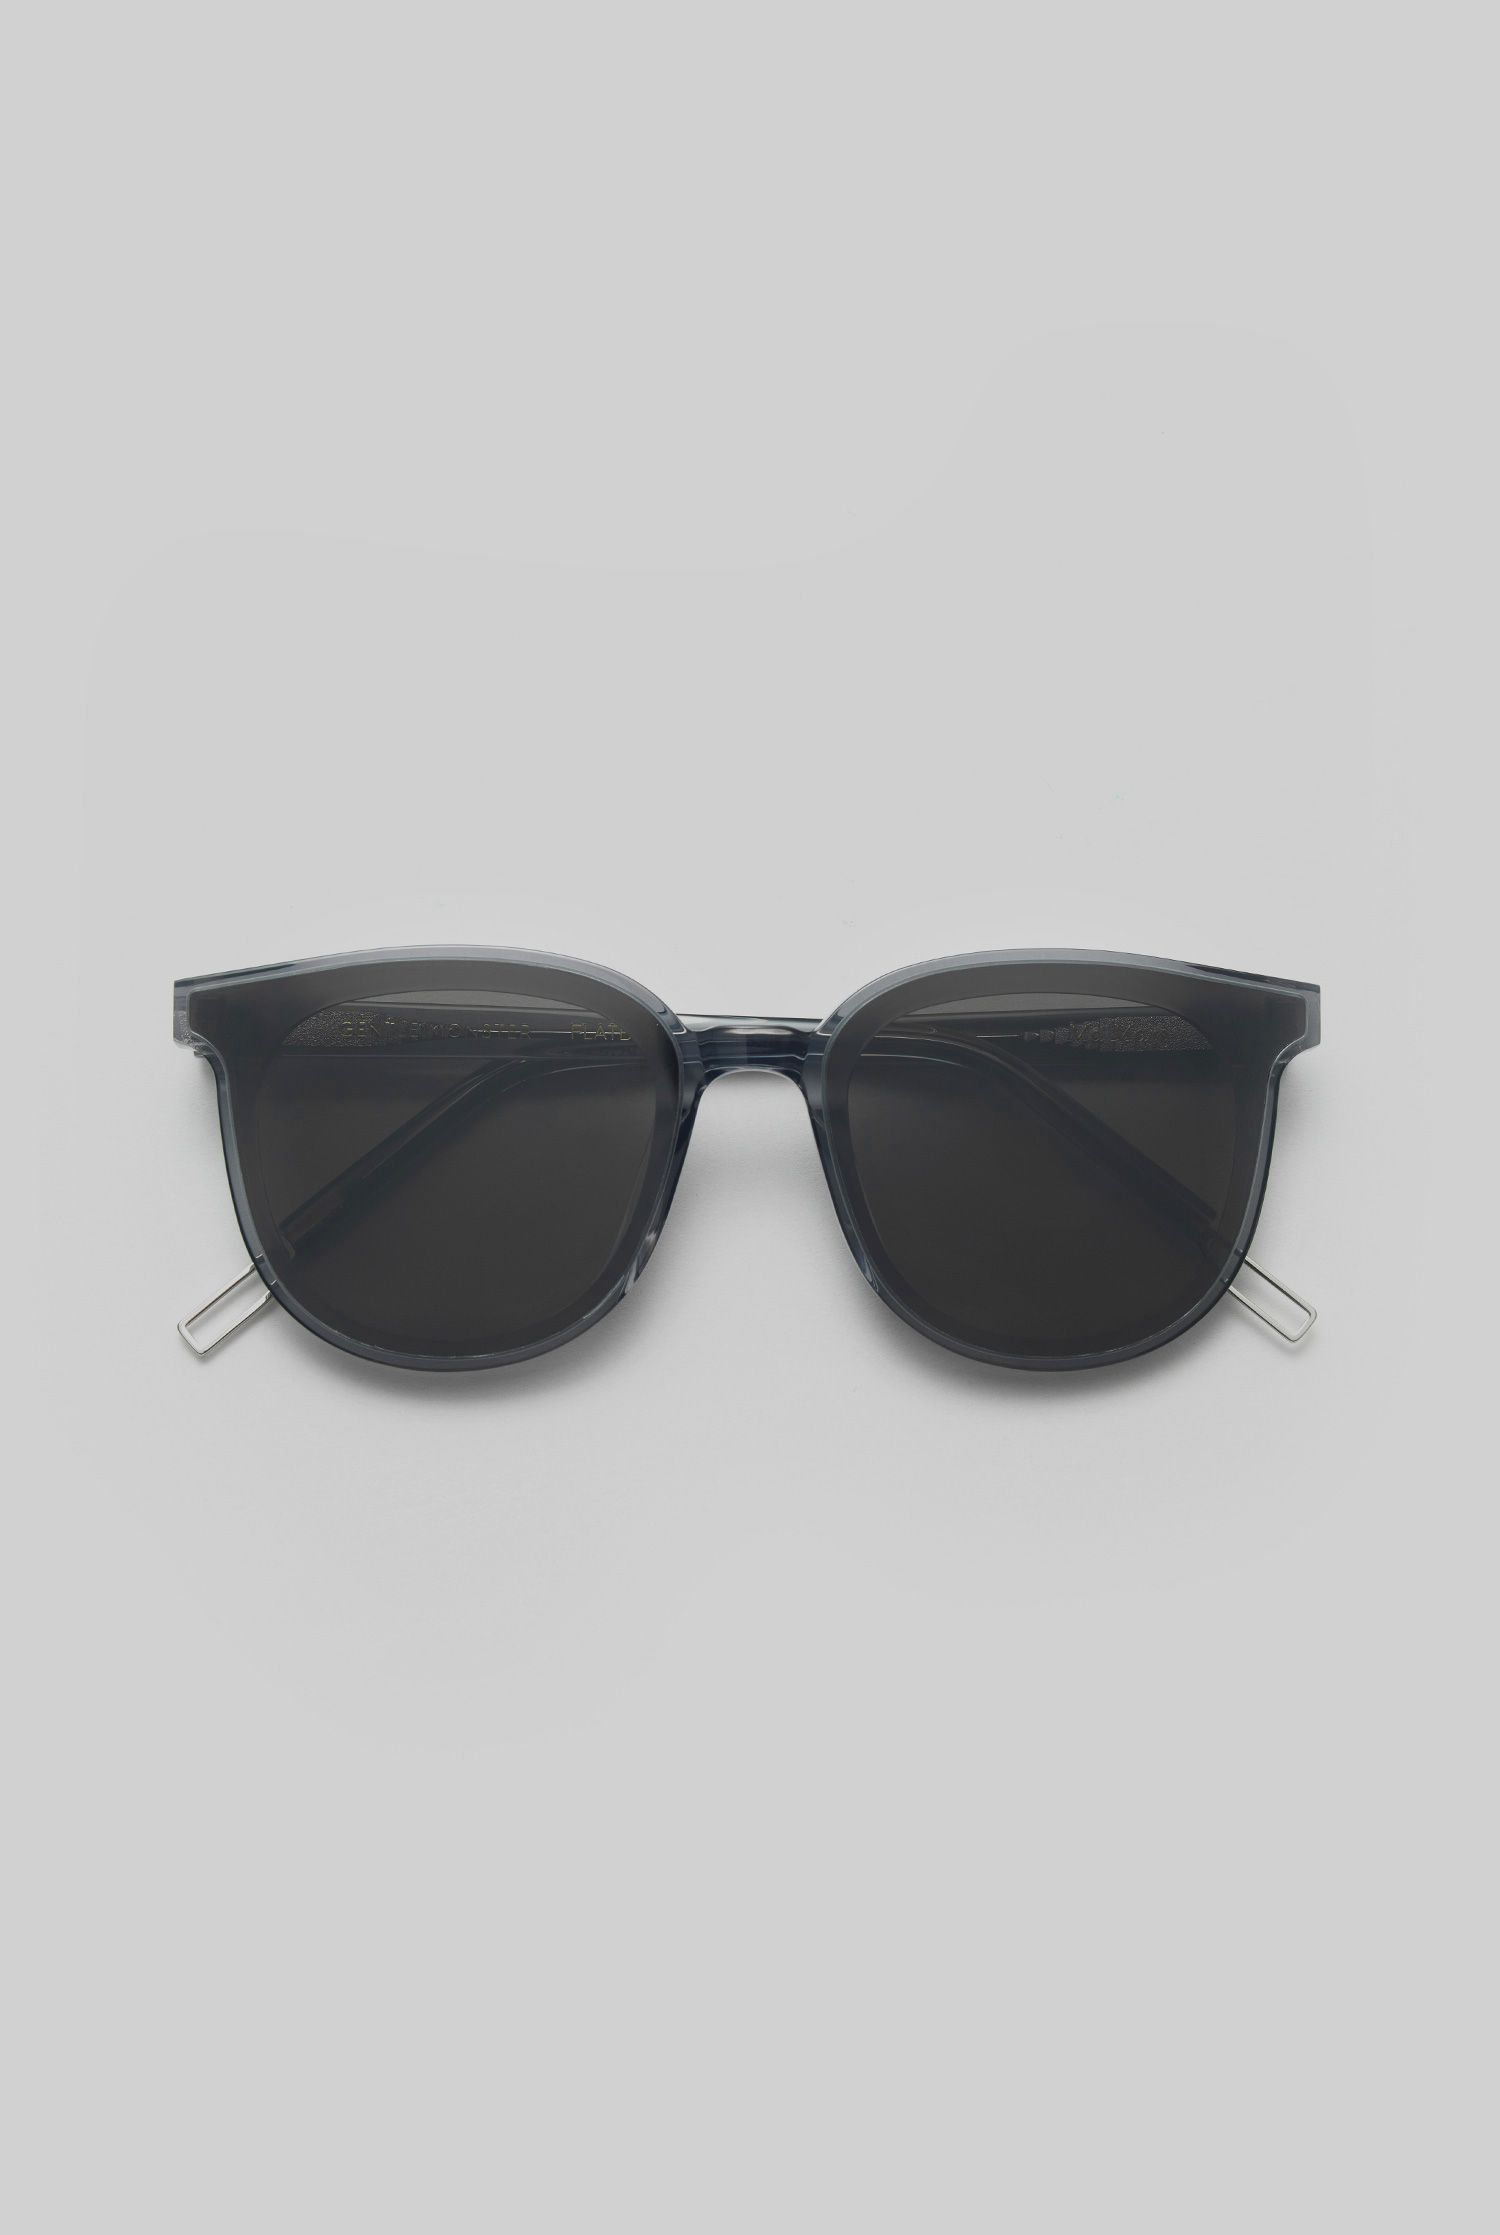 93289ddc110 GENTLE MONSTER 2018 Sunglasses MA MARS G1 FLATBA